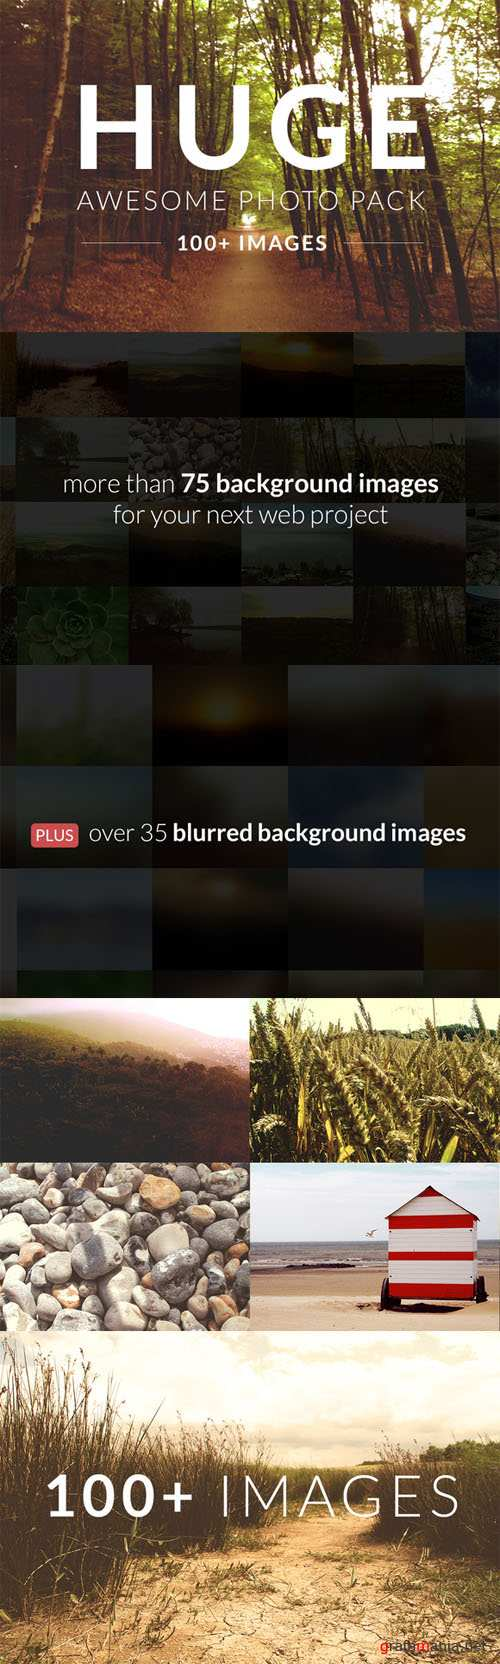 Huge images pack. 100+ images - Creativemarket 16759